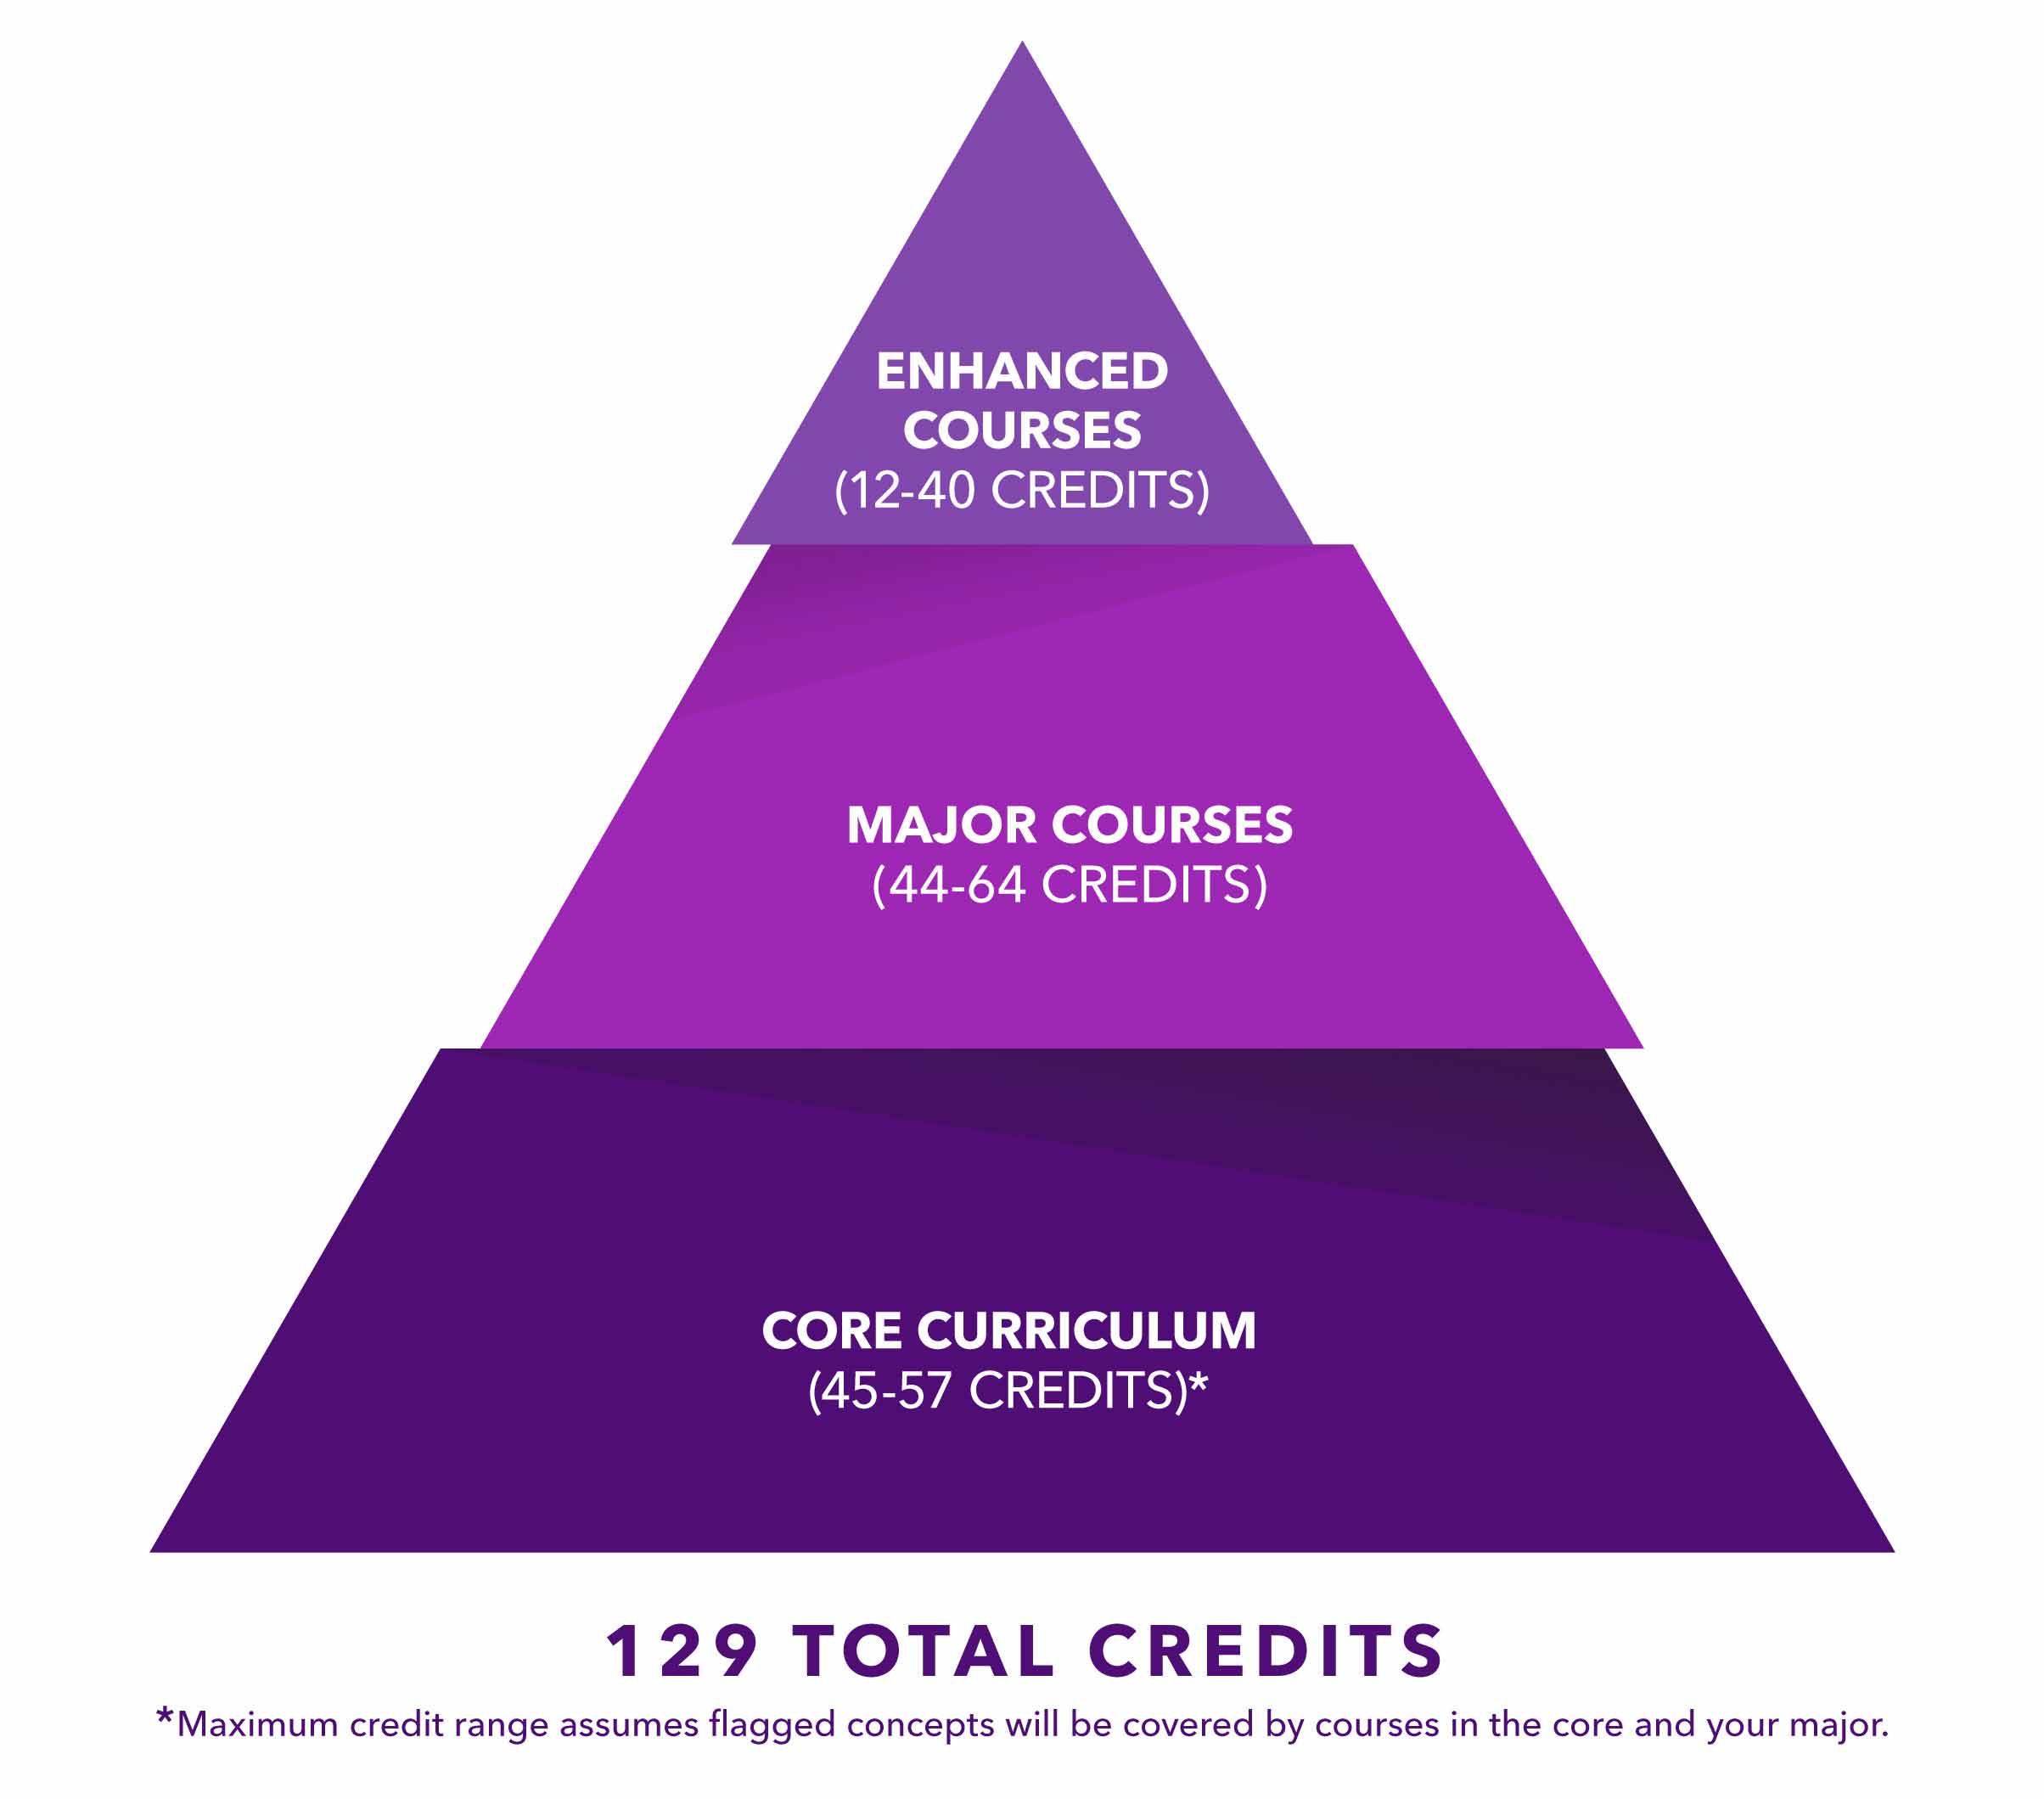 Pyramid infographic outlining credits needed for core curriculum, major courses and enhanced courses.